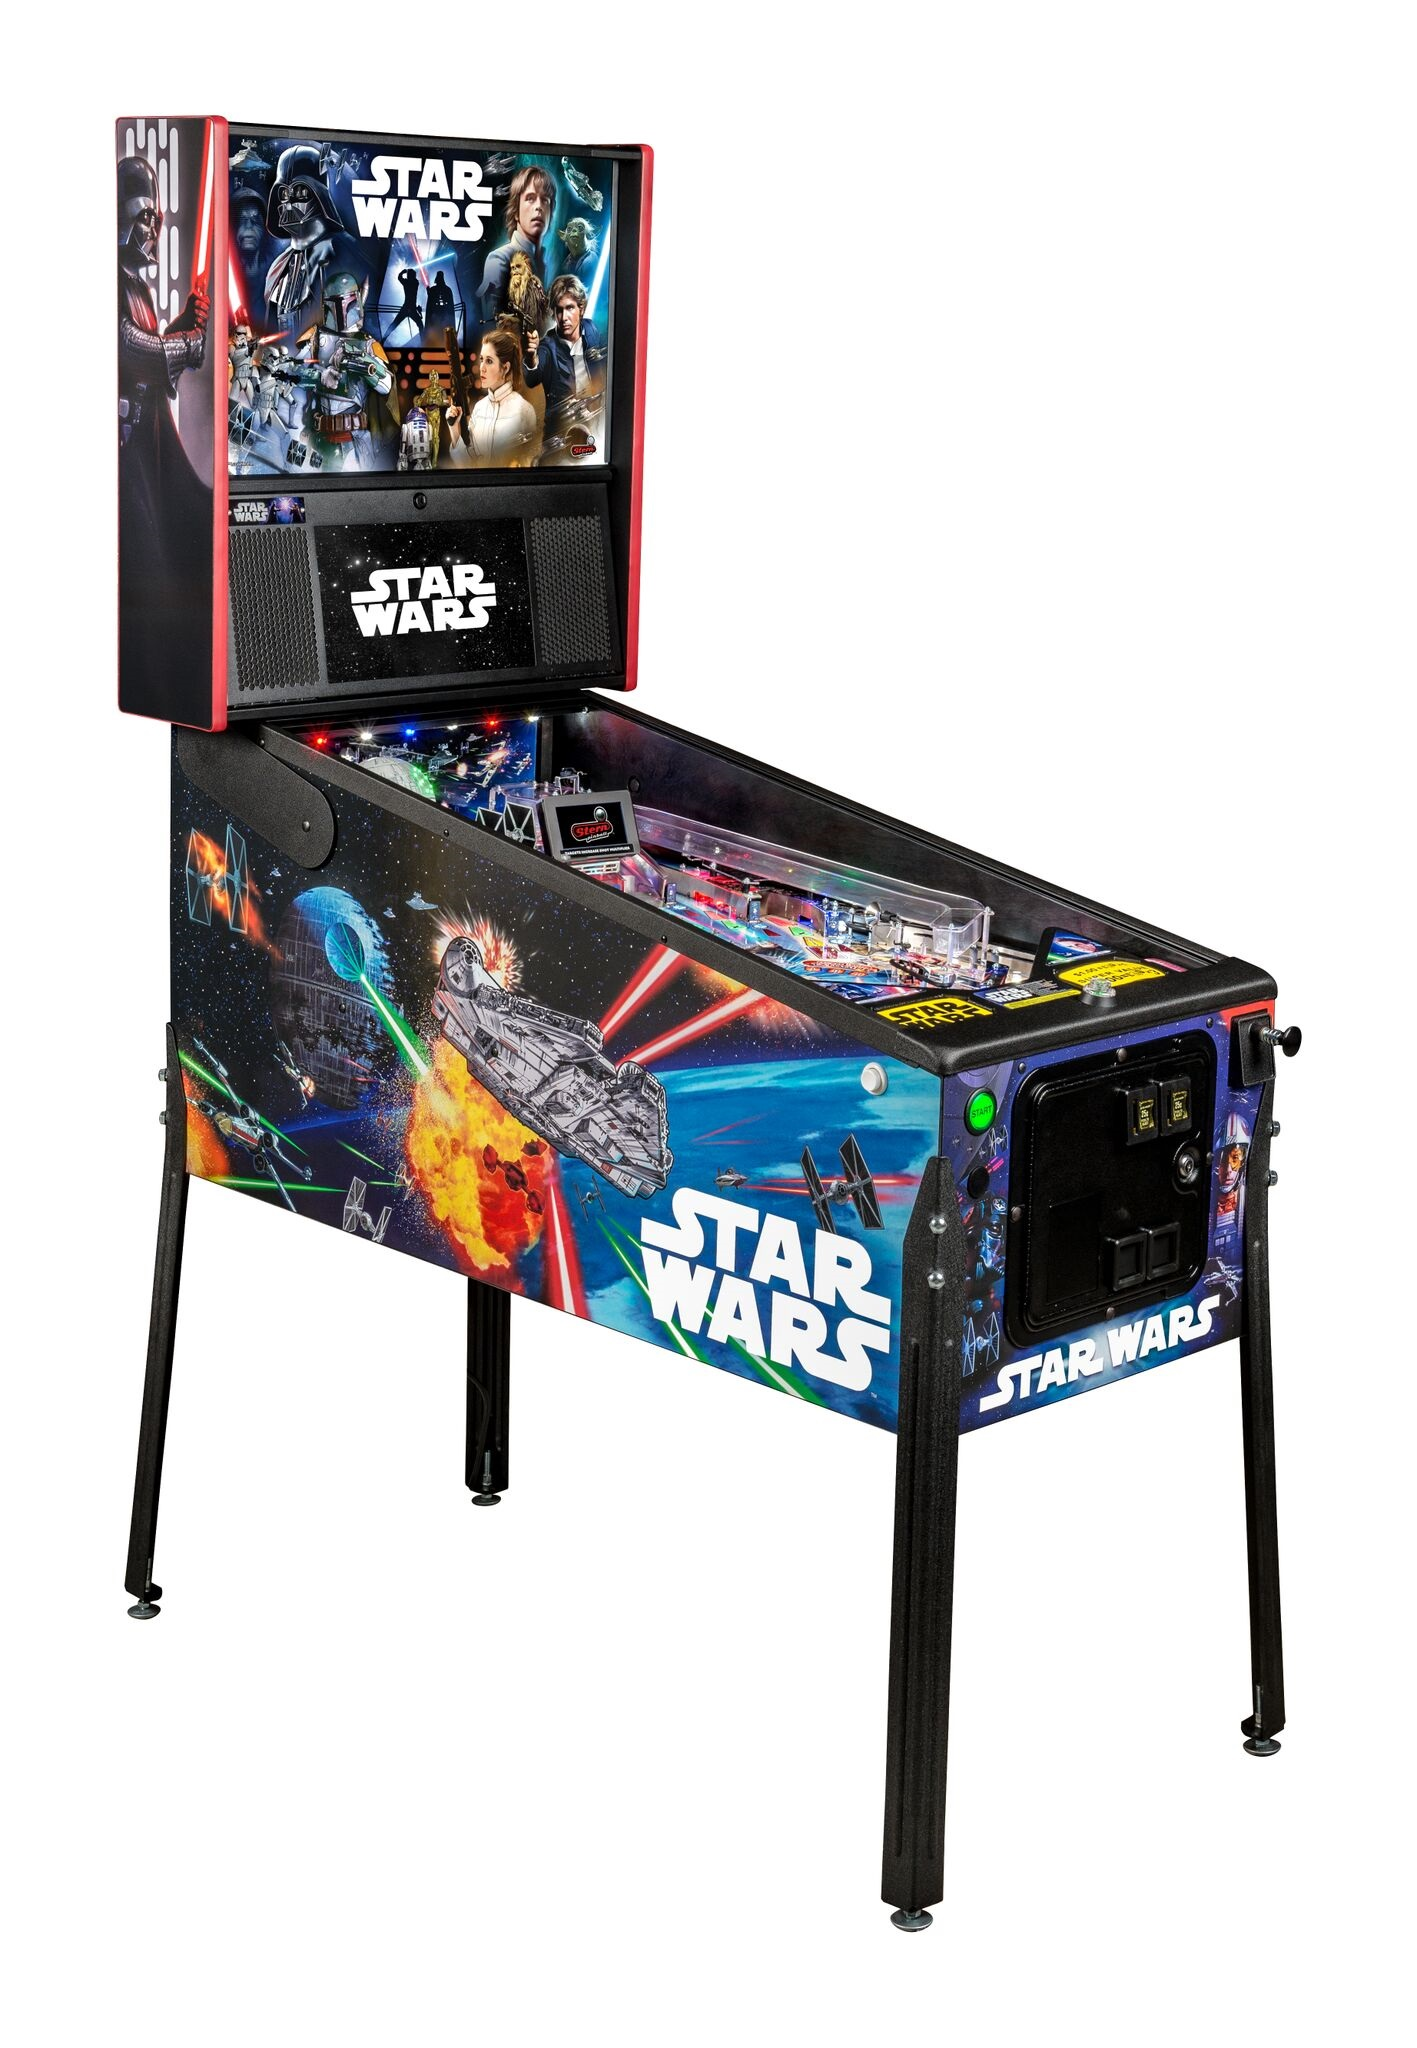 Stern Star Wars Pro Pinball Machine Free Shipping